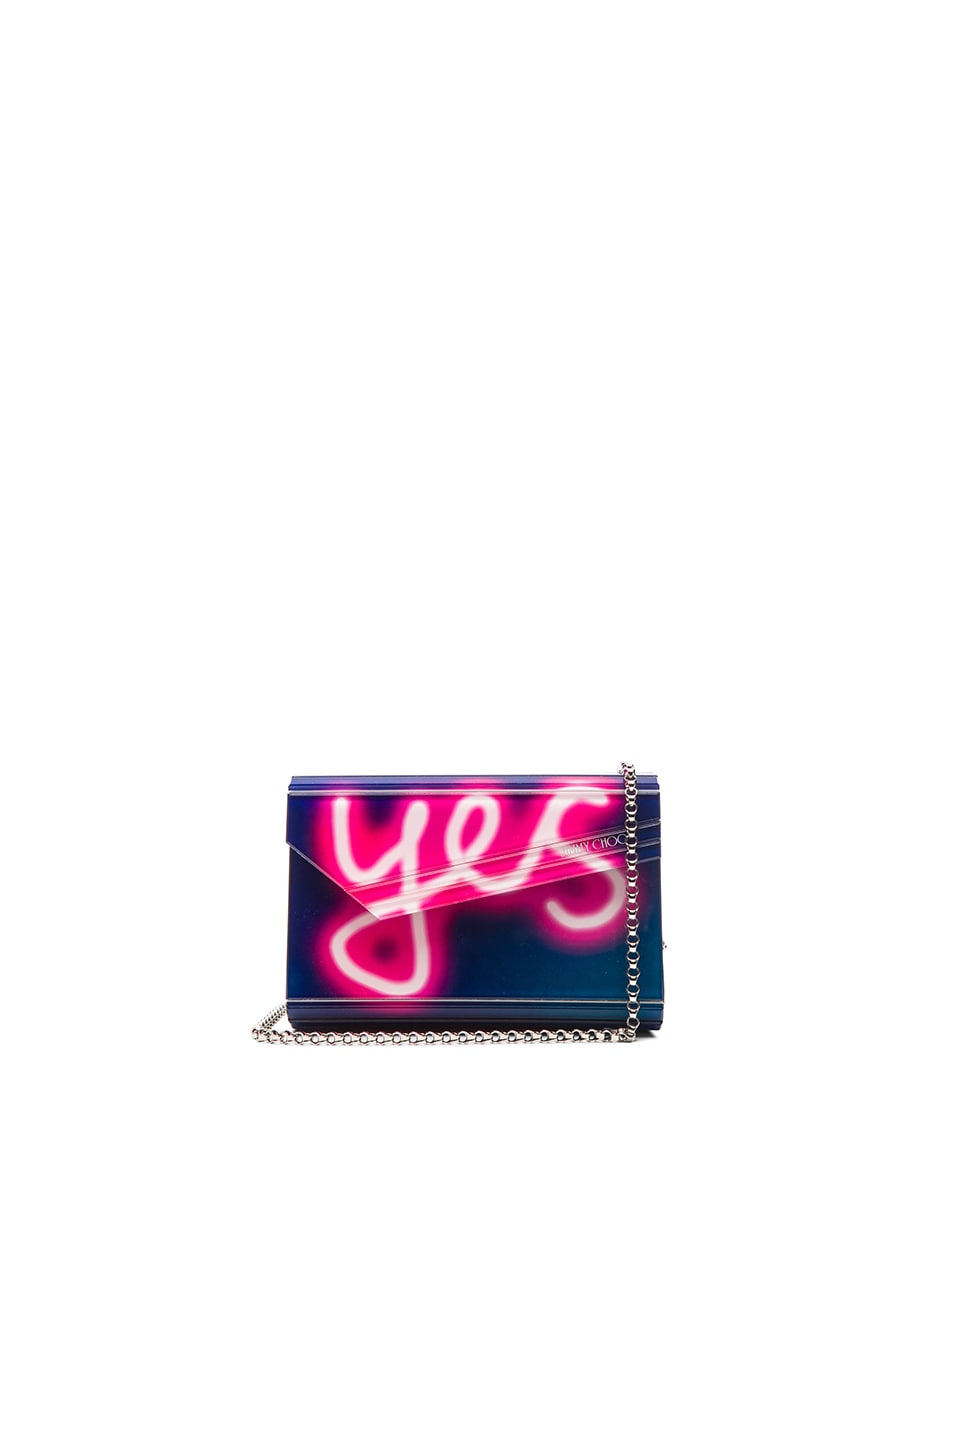 Image 1 of Jimmy Choo Neon Candy Clutch in Navy & Raspberry